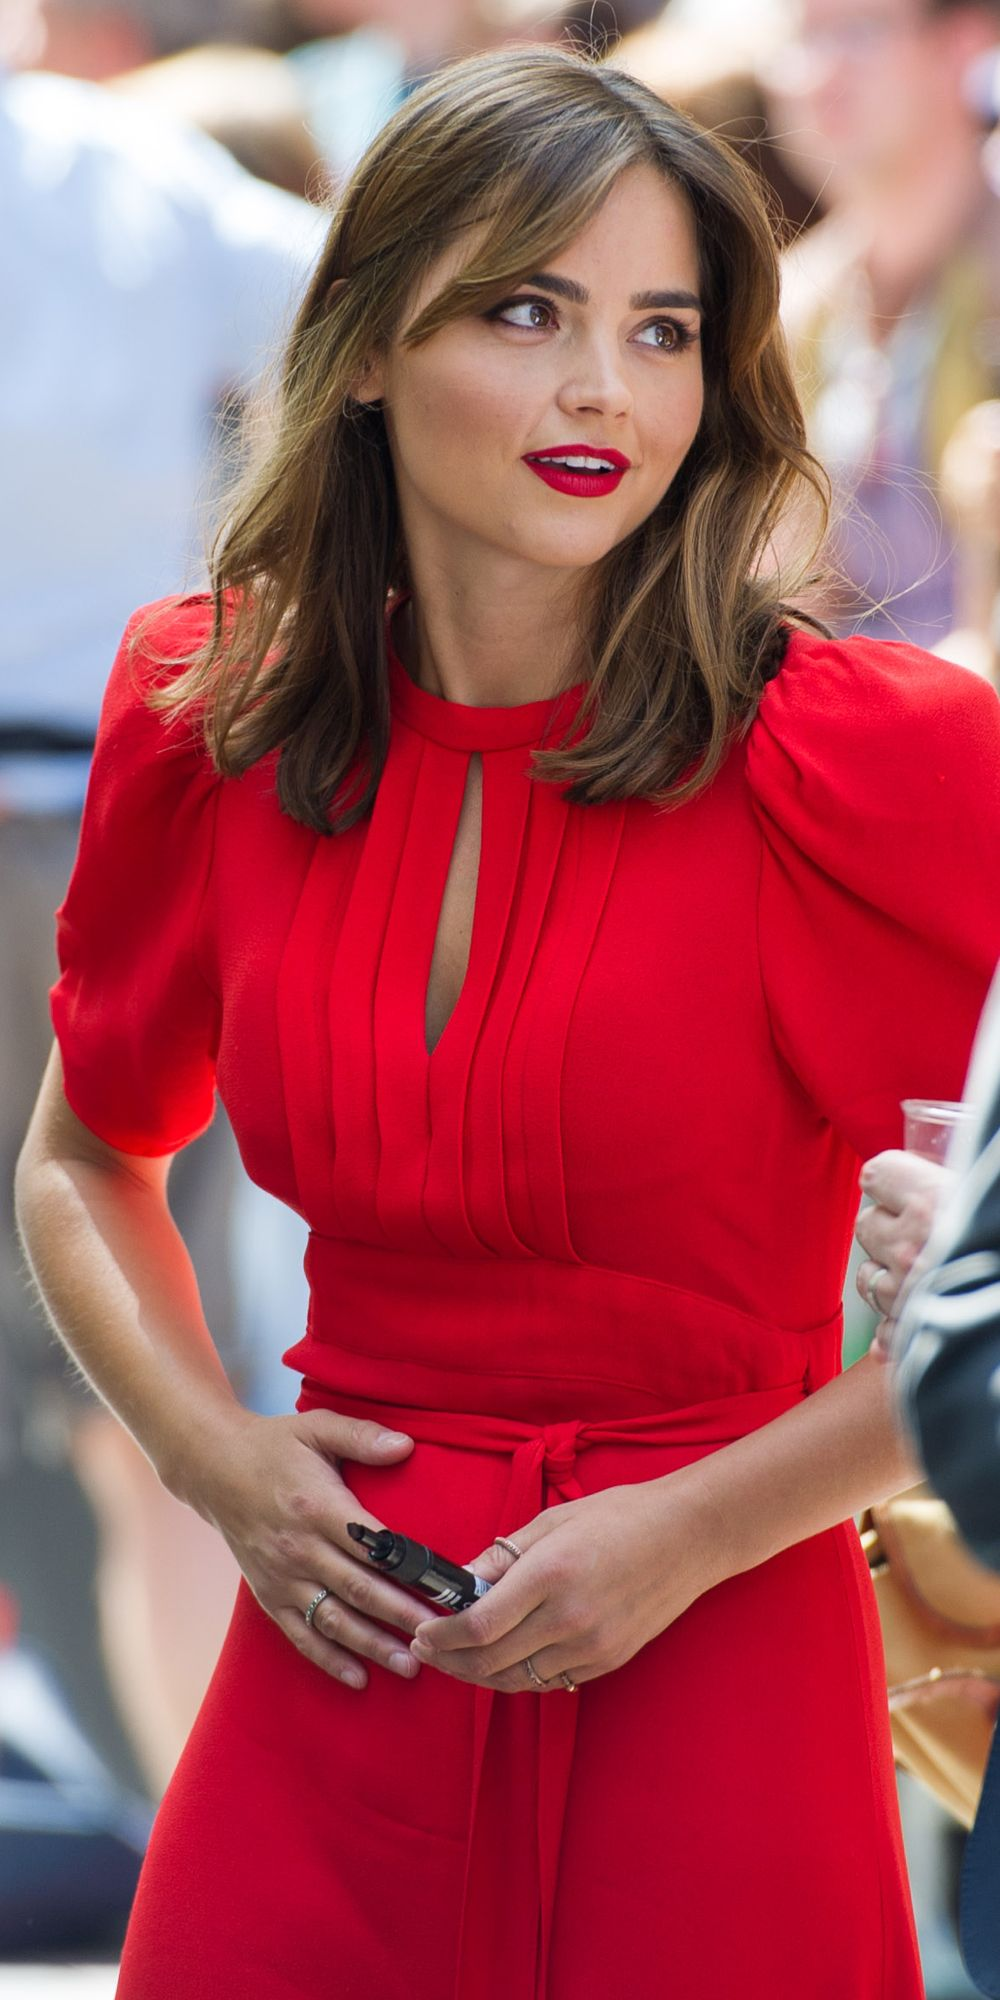 Can we talk about how *ridiculously* pretty Jenna Coleman is please?